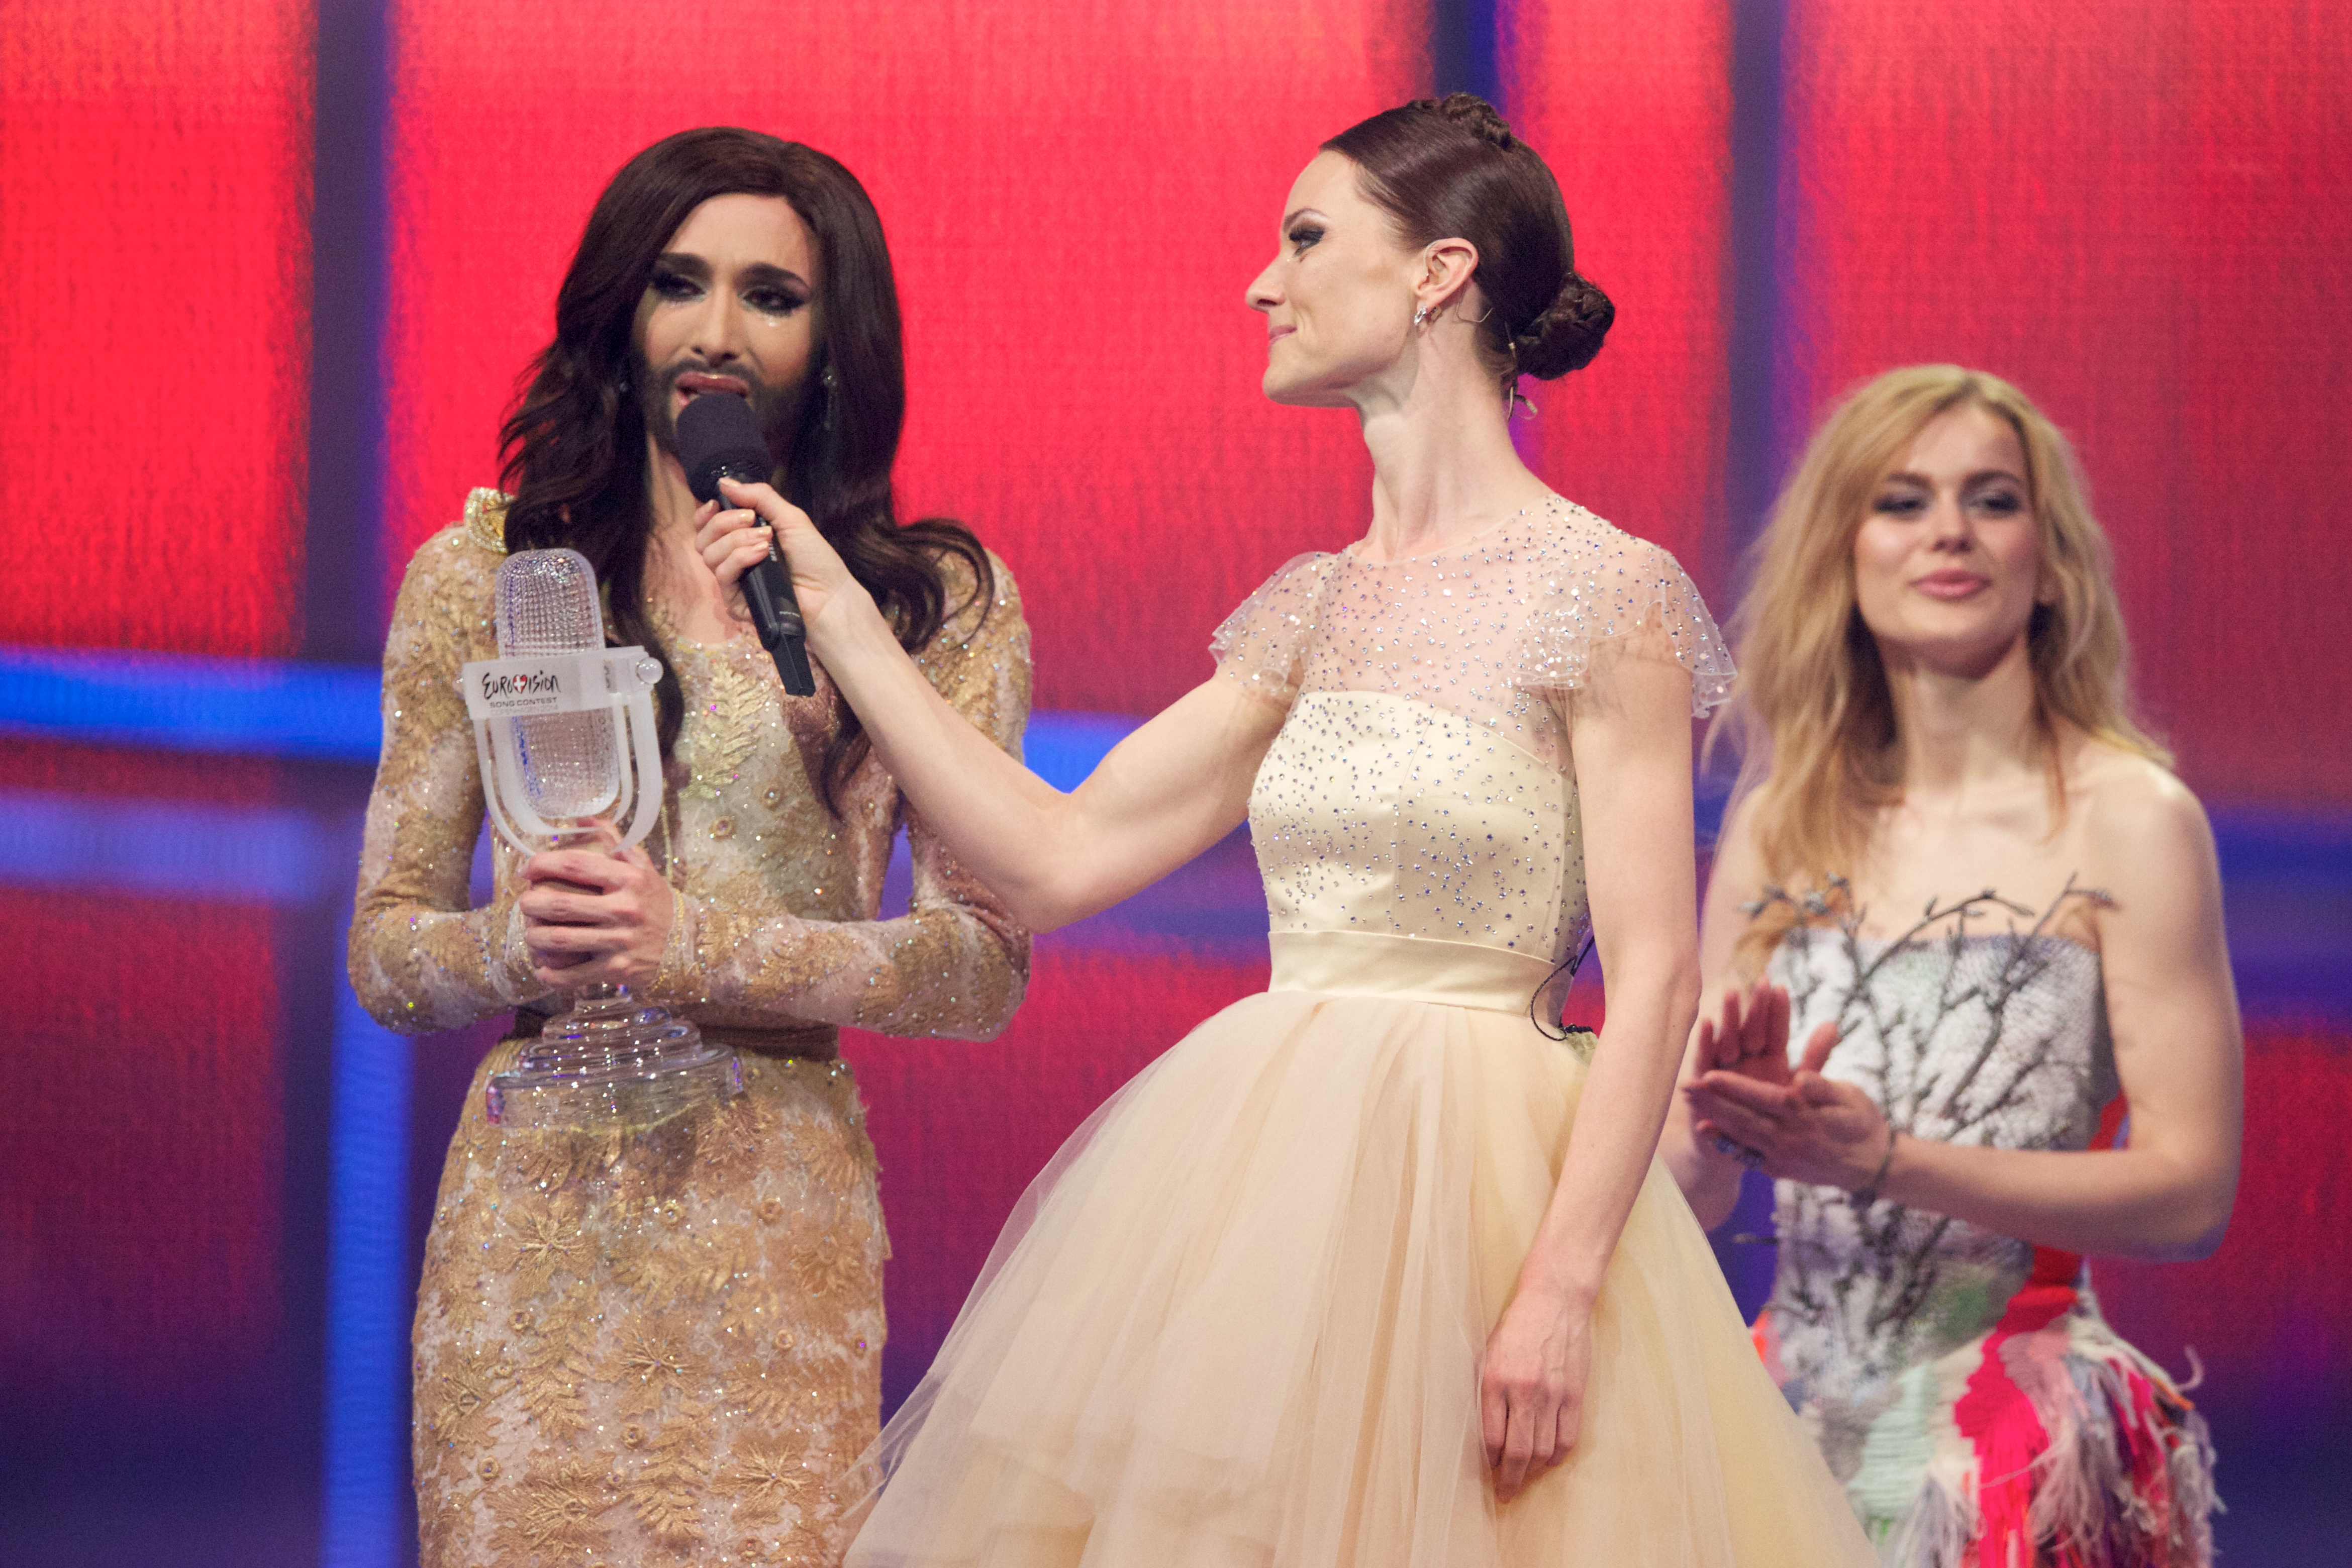 COPENHAGEN, DENMARK - MAY 10: Winner of 2014 Eurovision Song Contest Conchita Wurst of Austria, hostess Lise Ronne and the wi